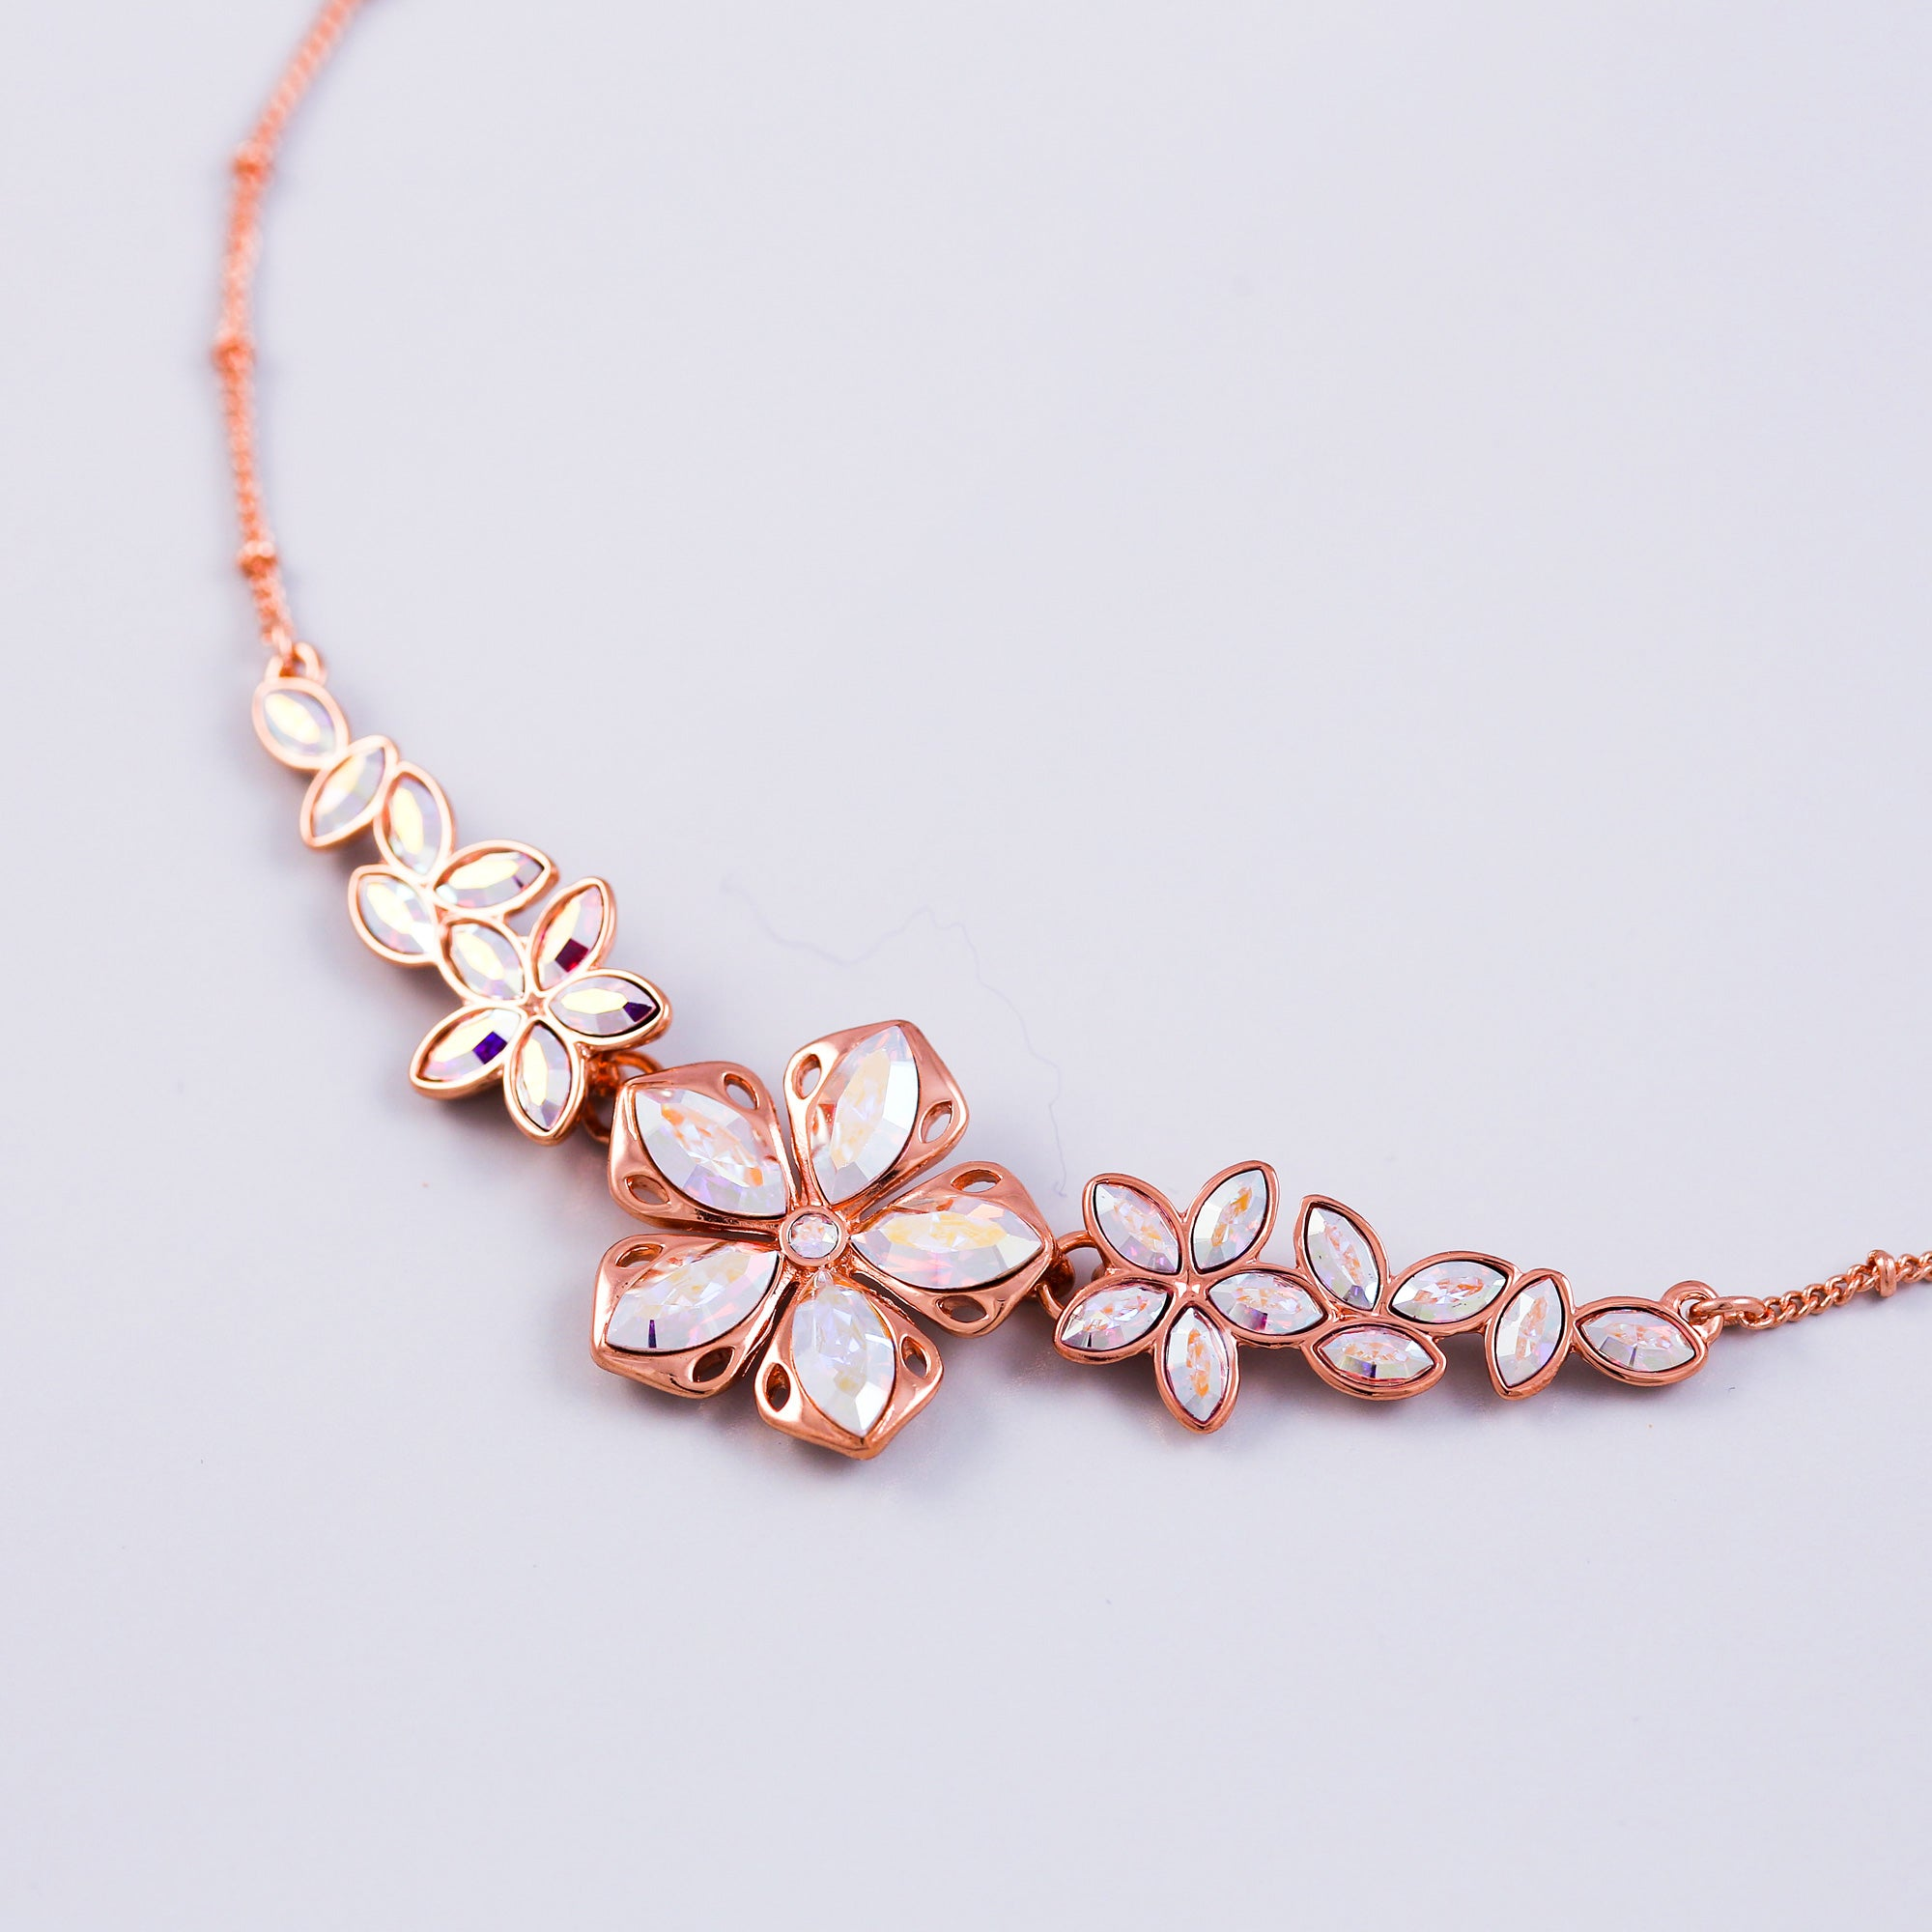 Rose Gold & Crystal AB|Cherry Blossom|Sakura Collar|Wedding Jewellery